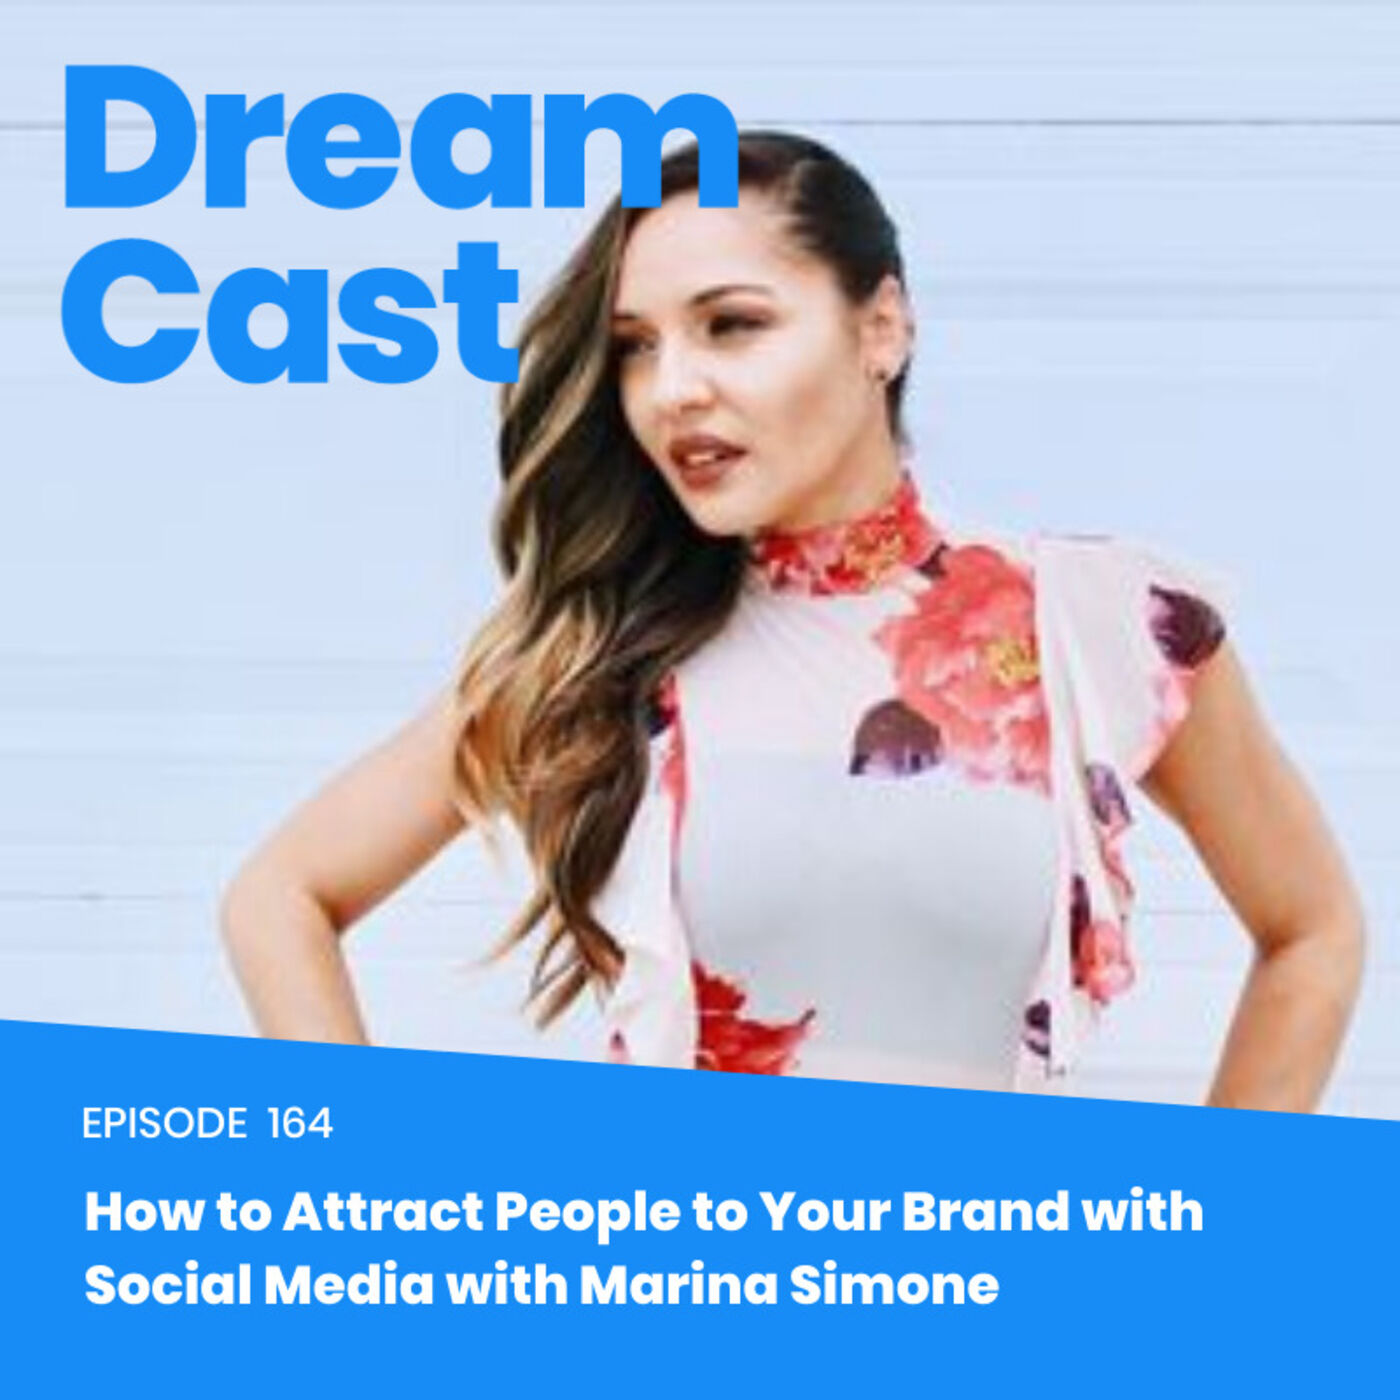 Episode 164 – How to Attract People to Your Brand with Social Media with Marina Simone